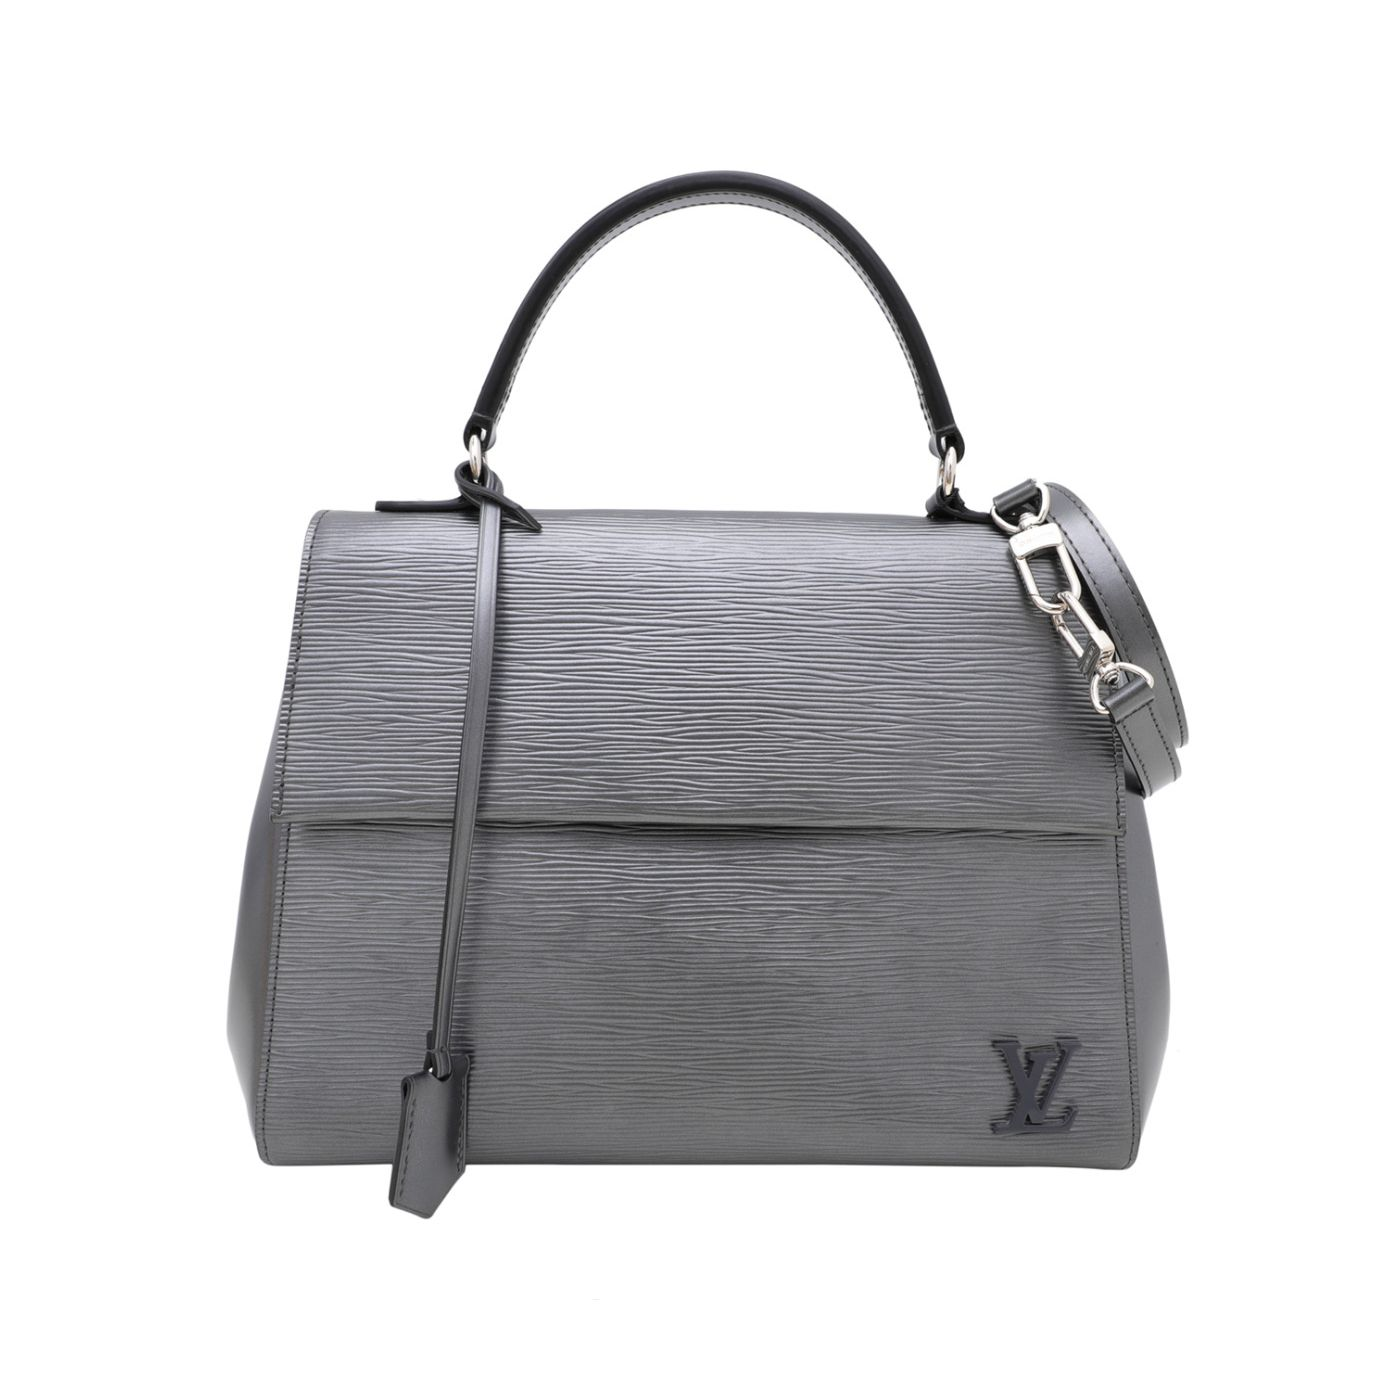 Louis Vuitton Anthracite Nacre Cluny MM Bag